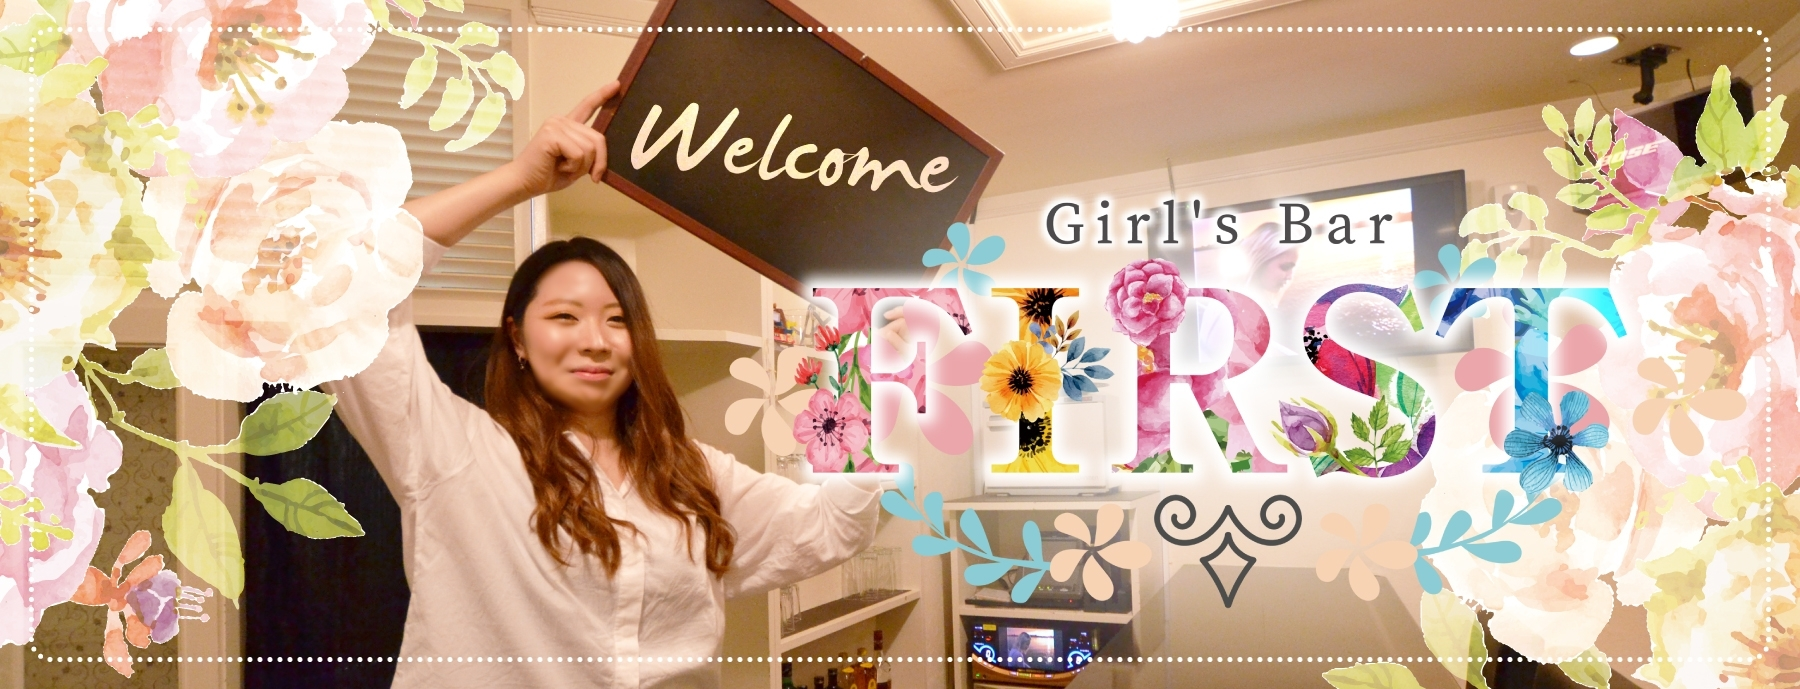 Girl's Bar First 〜ファースト〜